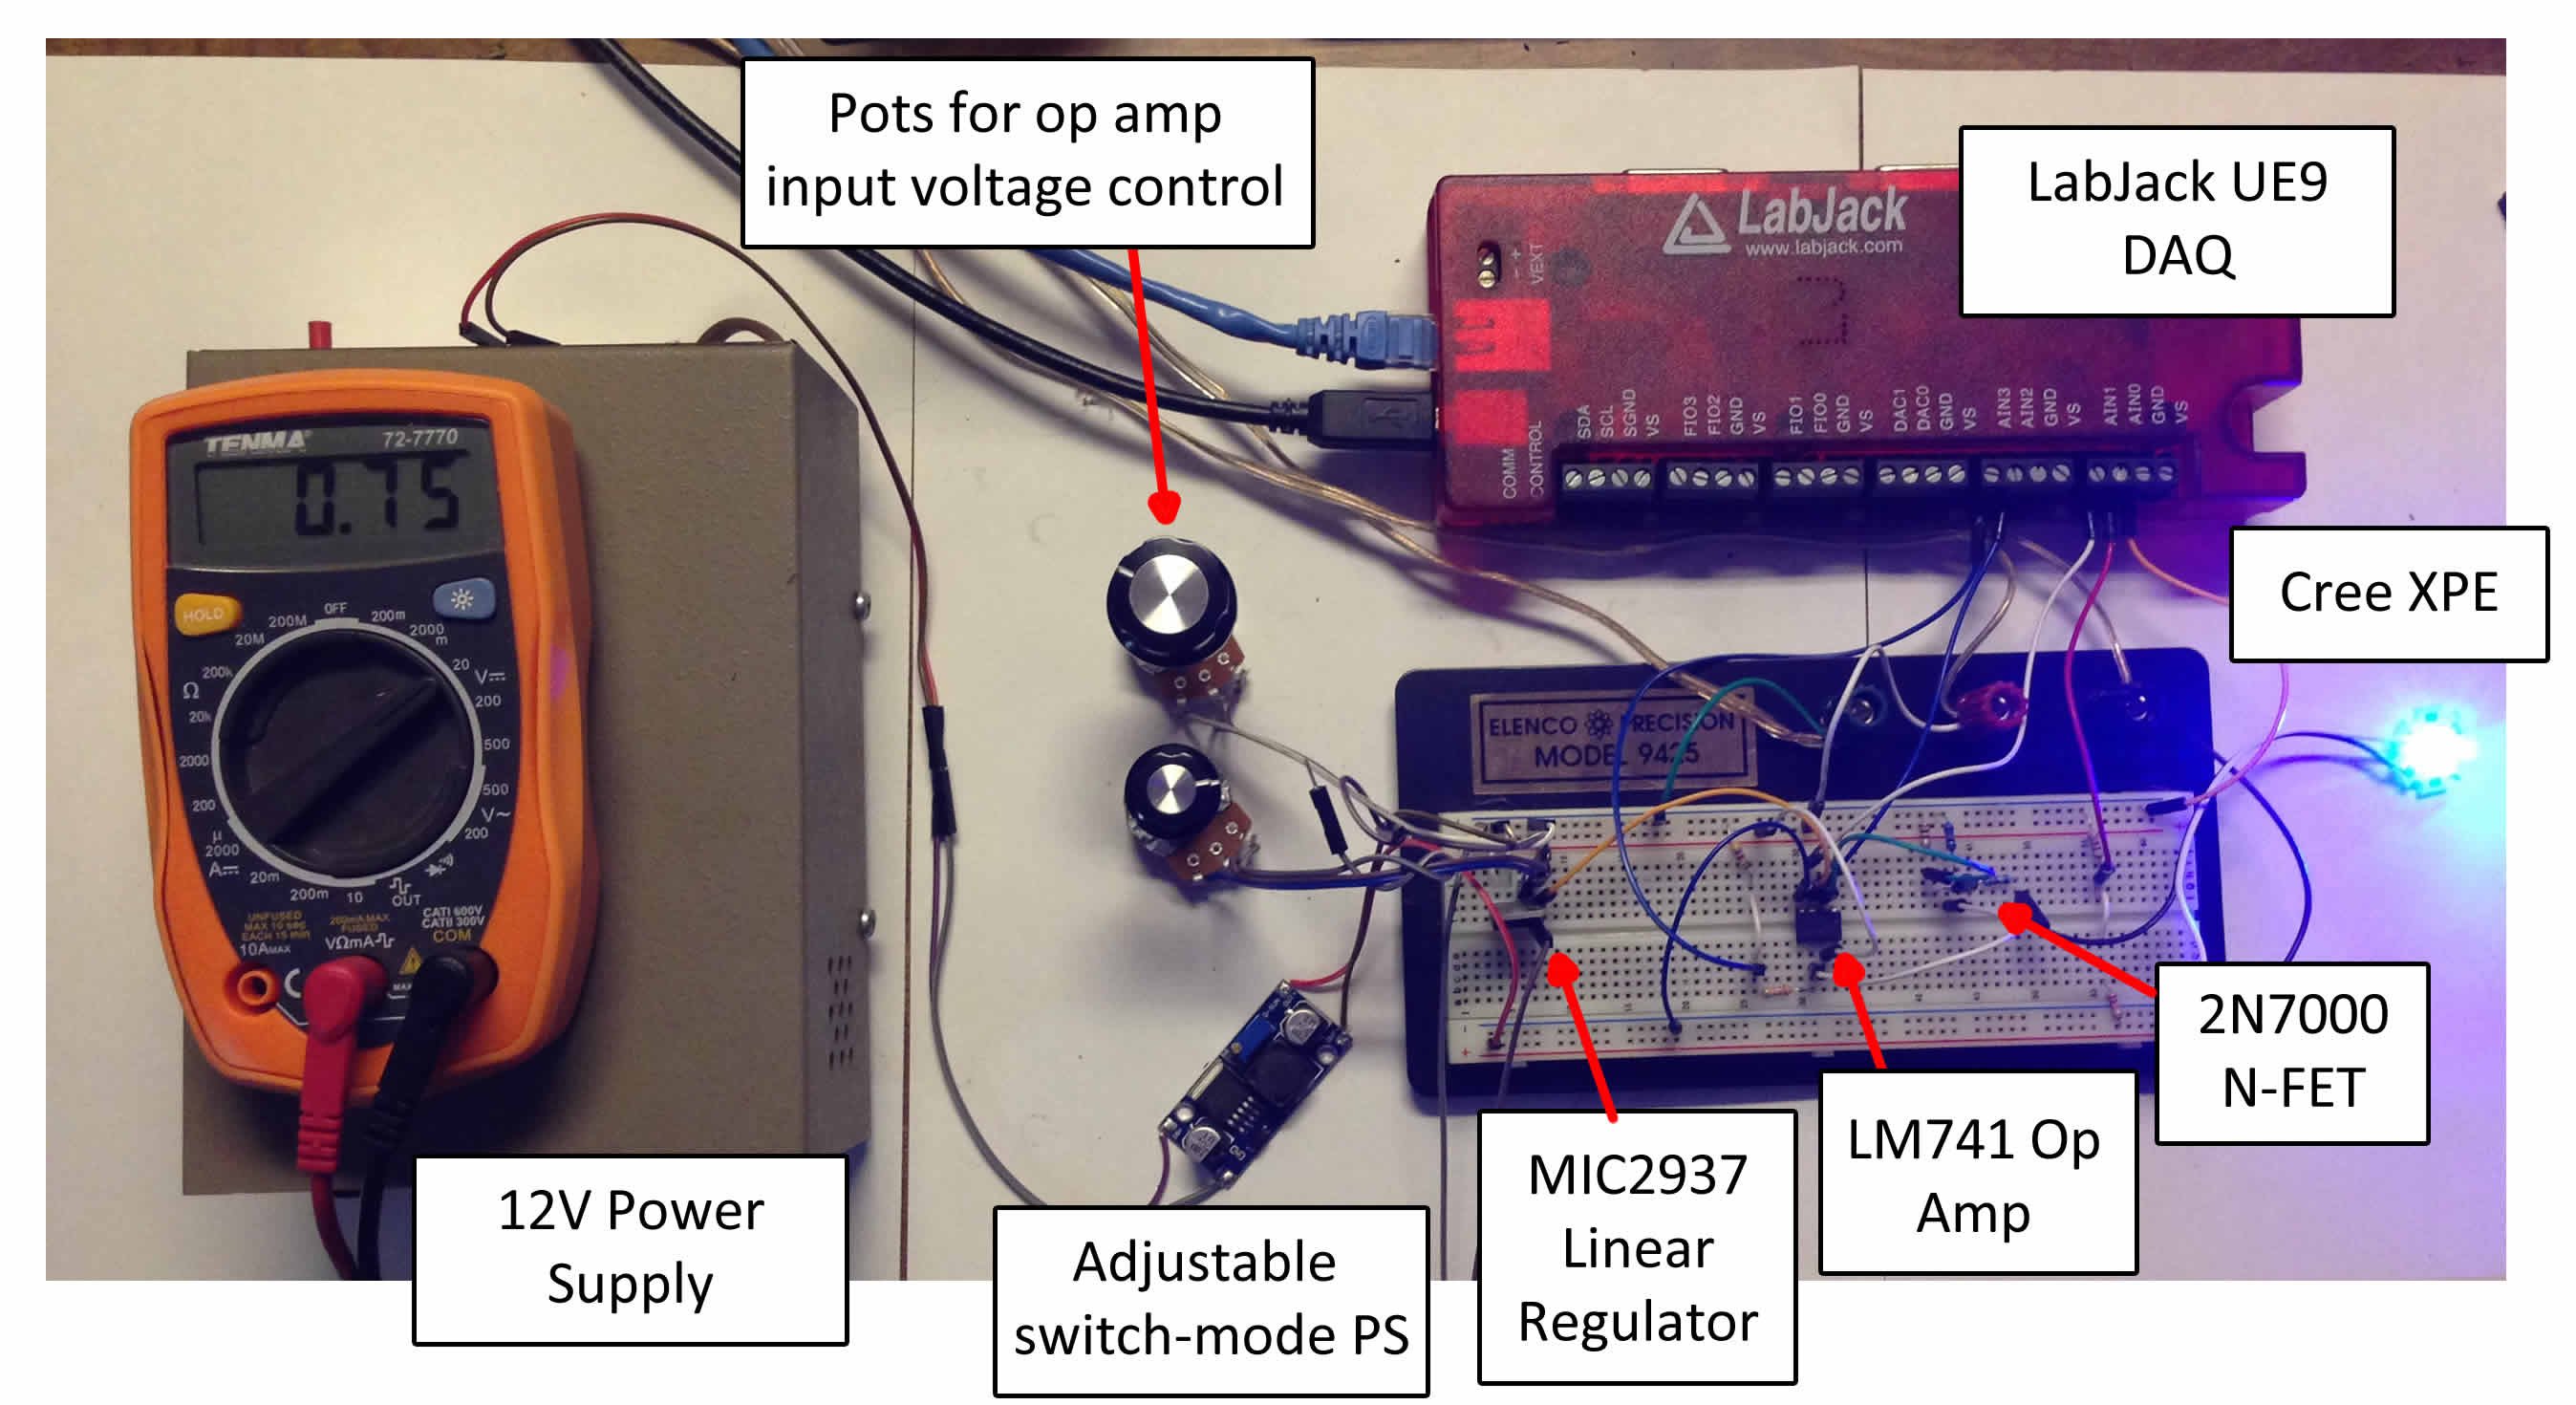 August 2014 Cupid Controls Simple Fire Alarm Circuits Using Germanium Diode And Lm341 At Low Cost Our Test Setup With The Important Bits Labeled